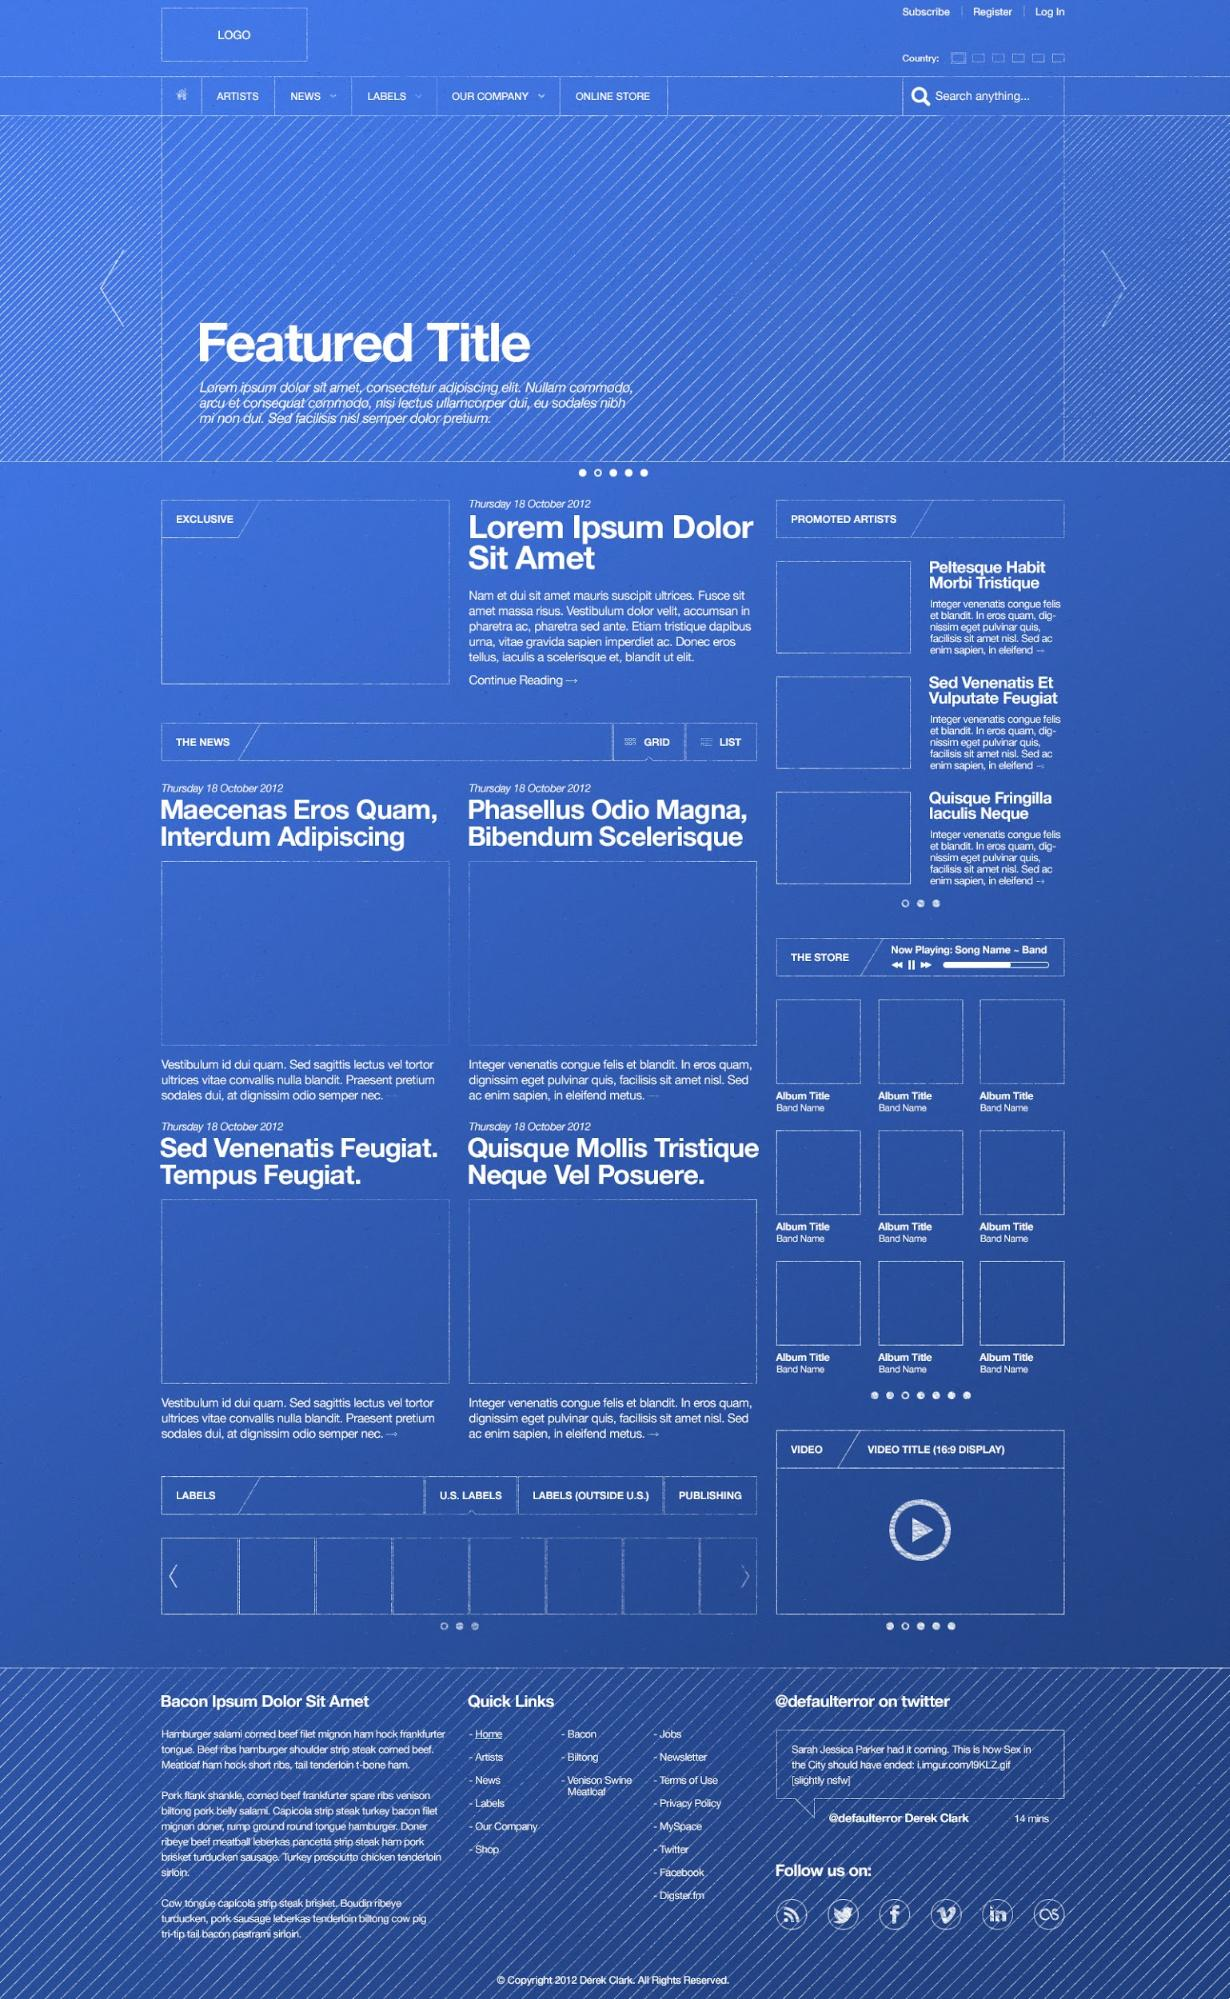 The Modern Web Design Process Creating Sitemaps And Wireframes Electrical Schematic Blueprint Reading Course Syllabus Derek Clark Created This Wireframe Which Shows Only Basic Elements Of A Page Layout But Still Communicates So Much How Final Will Look